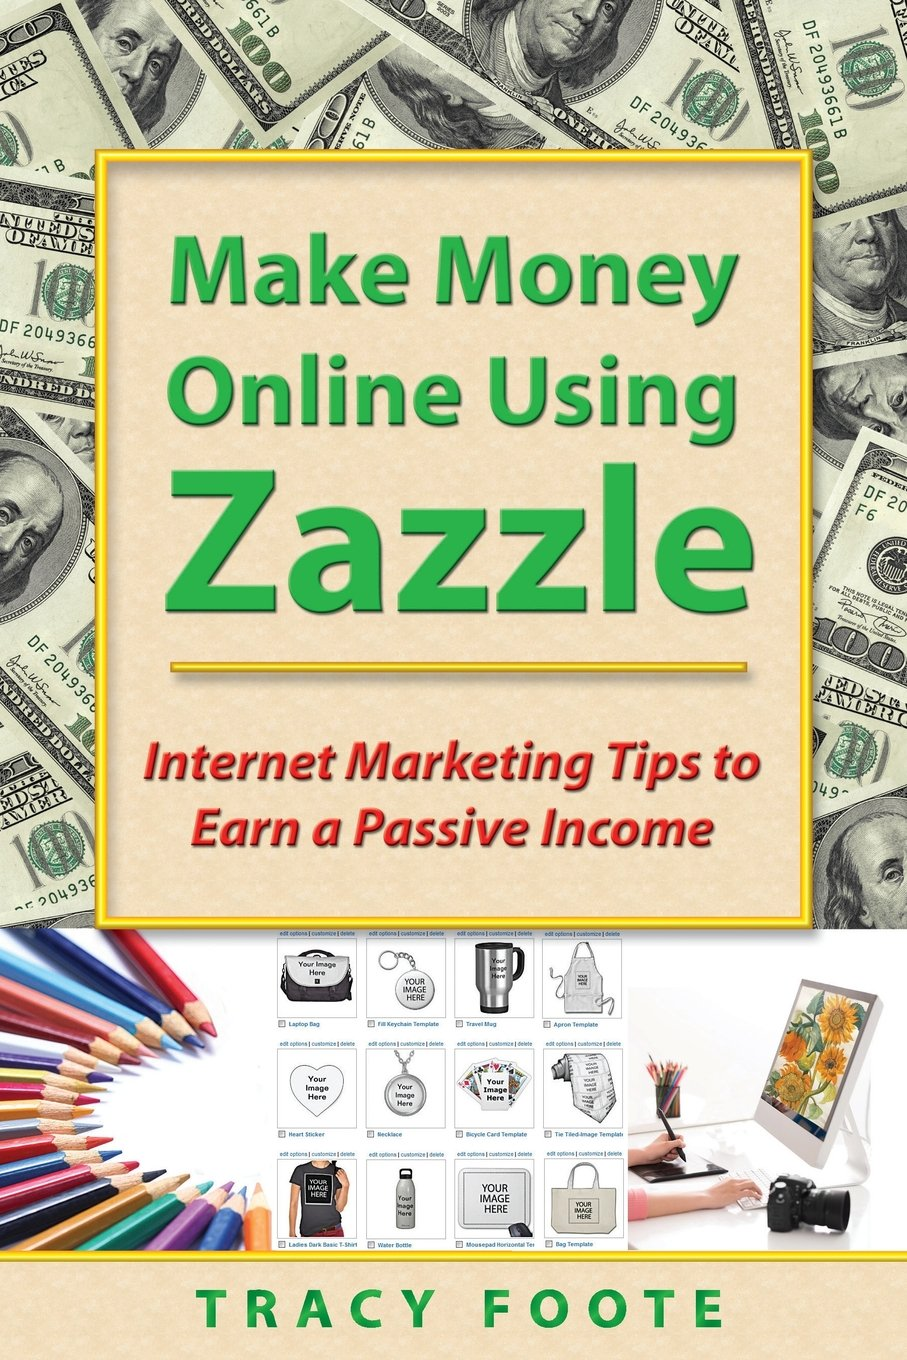 Make Money Online Using Zazzle product image